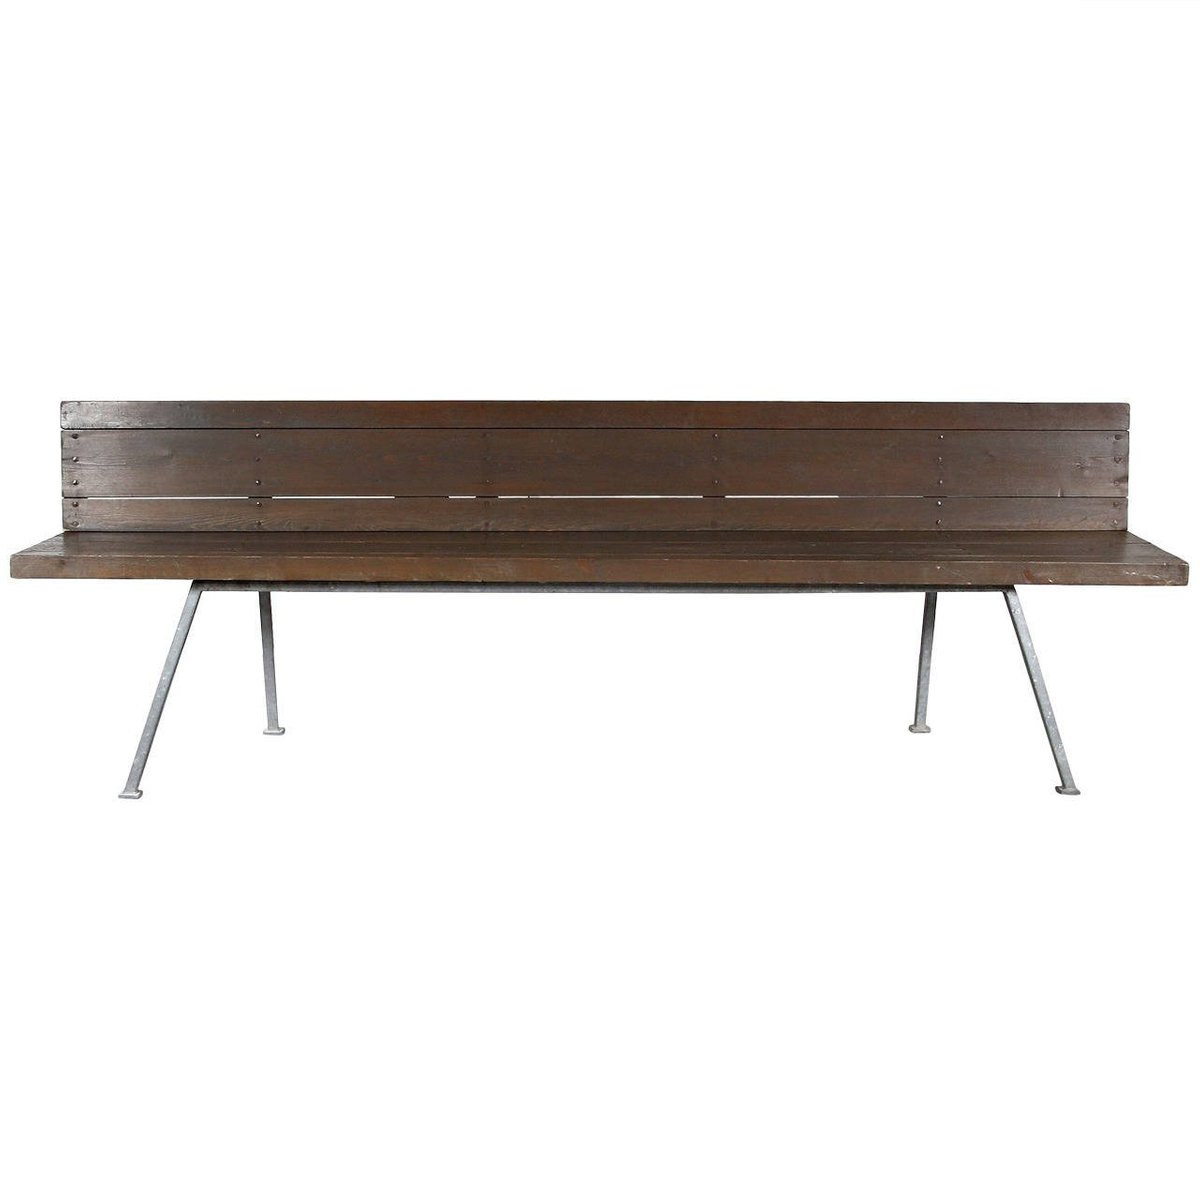 Dutch Metal And Wood Bench By Dom Hans Van Der Laan 1967 For Sale At Pamono